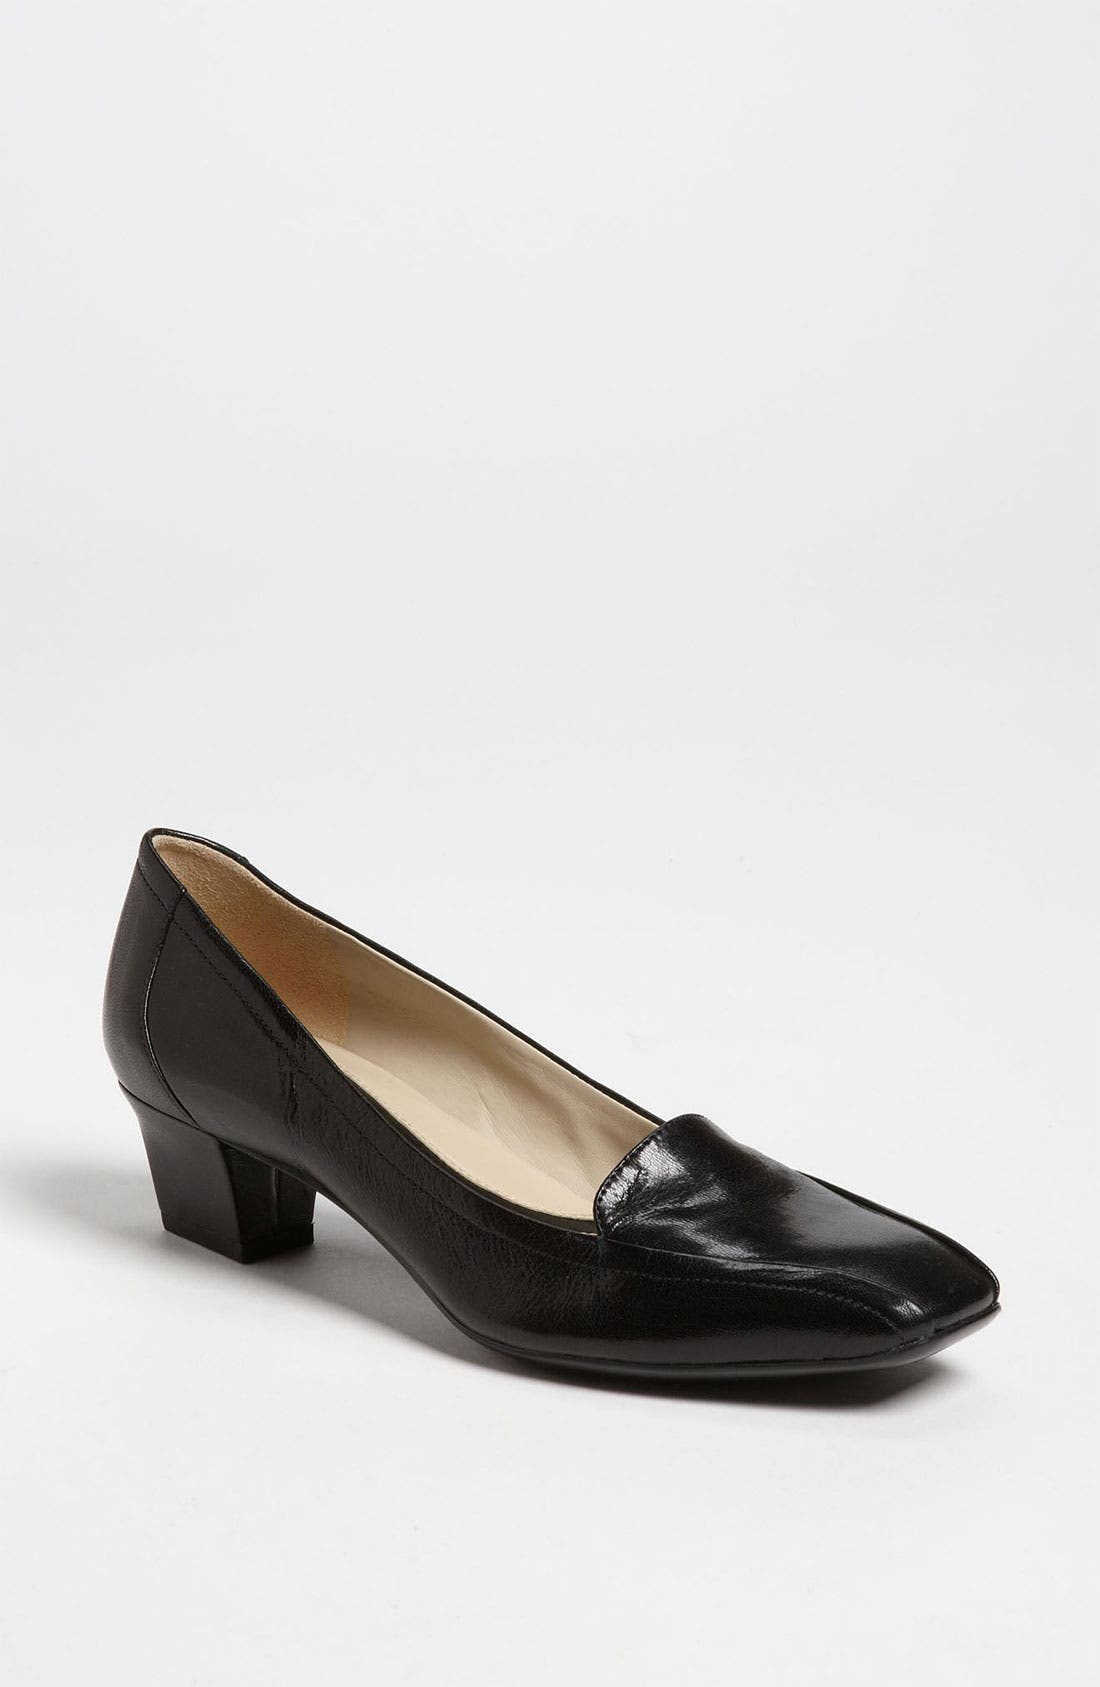 Main Image - Naturalizer 'Fuller' Pump